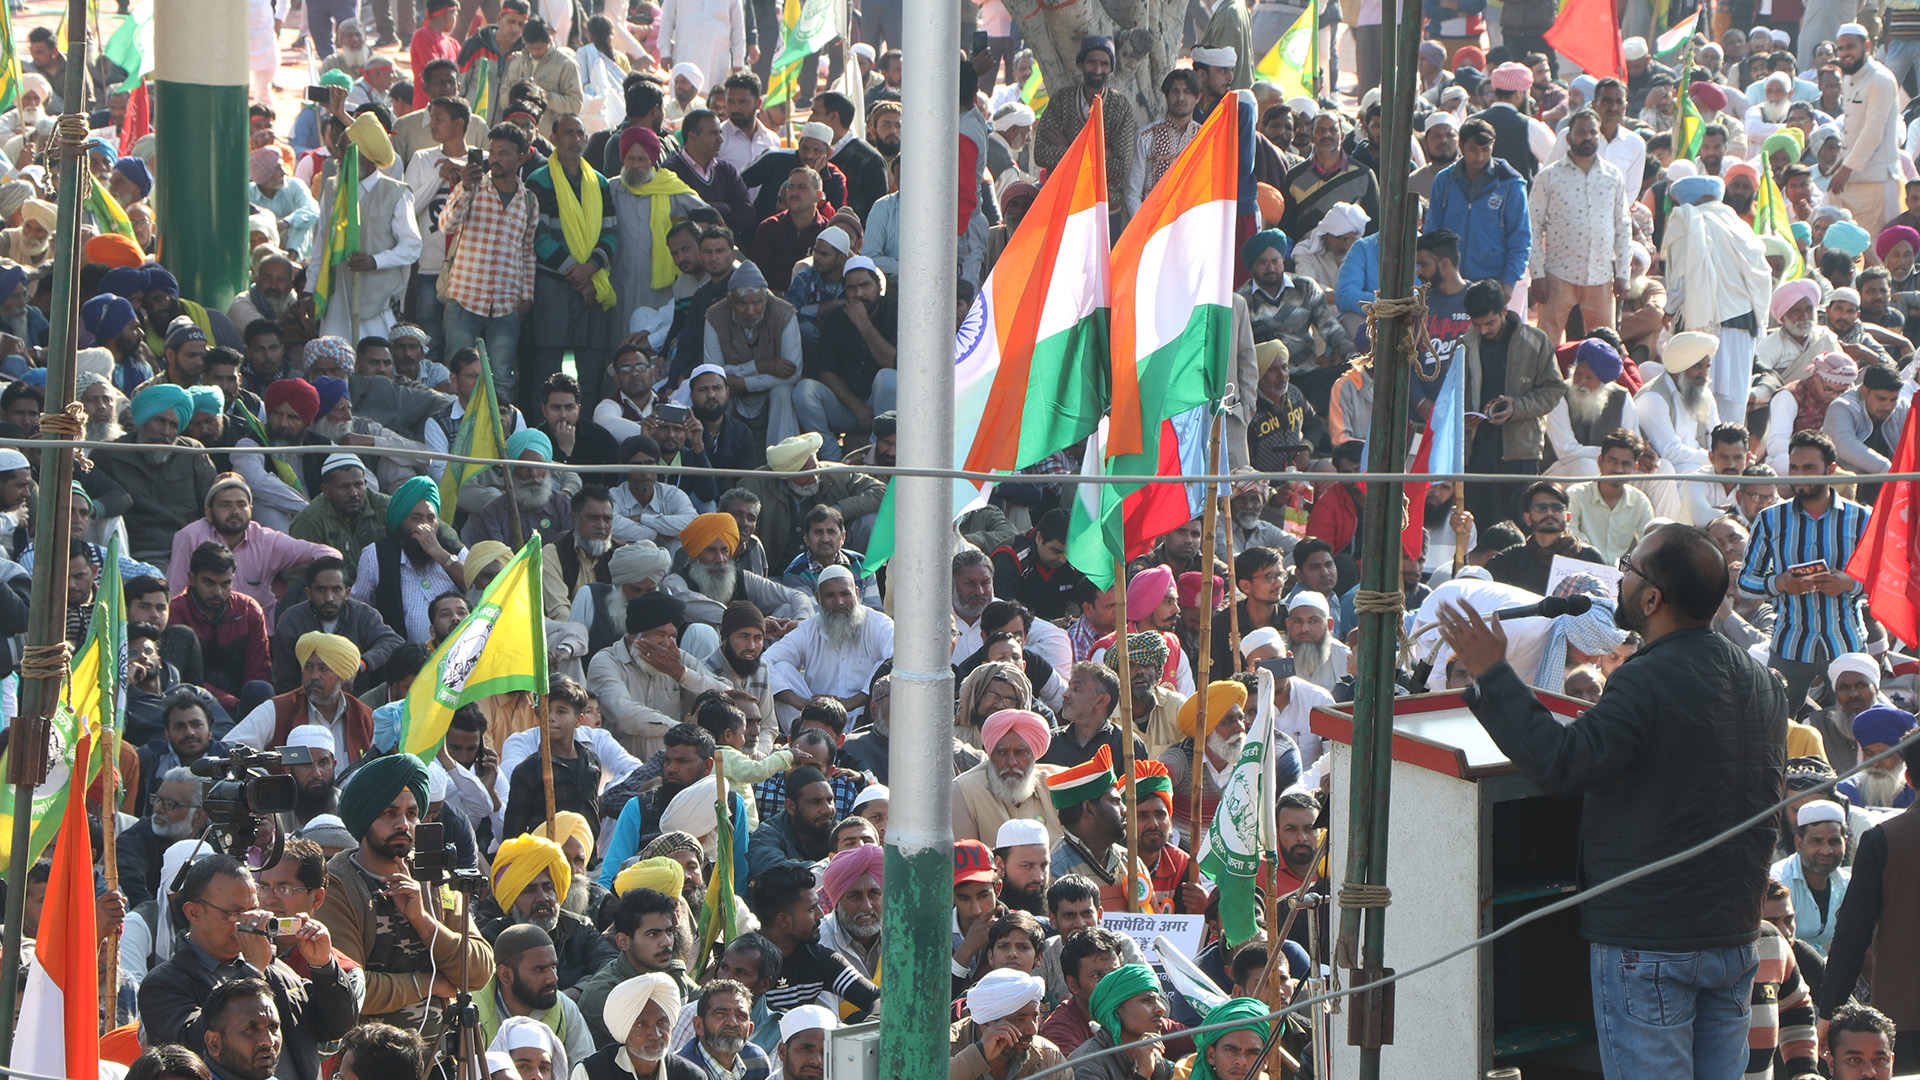 FEATURE/INDIA The Spirit of Protest: How Indians are uniting in Malerkotla